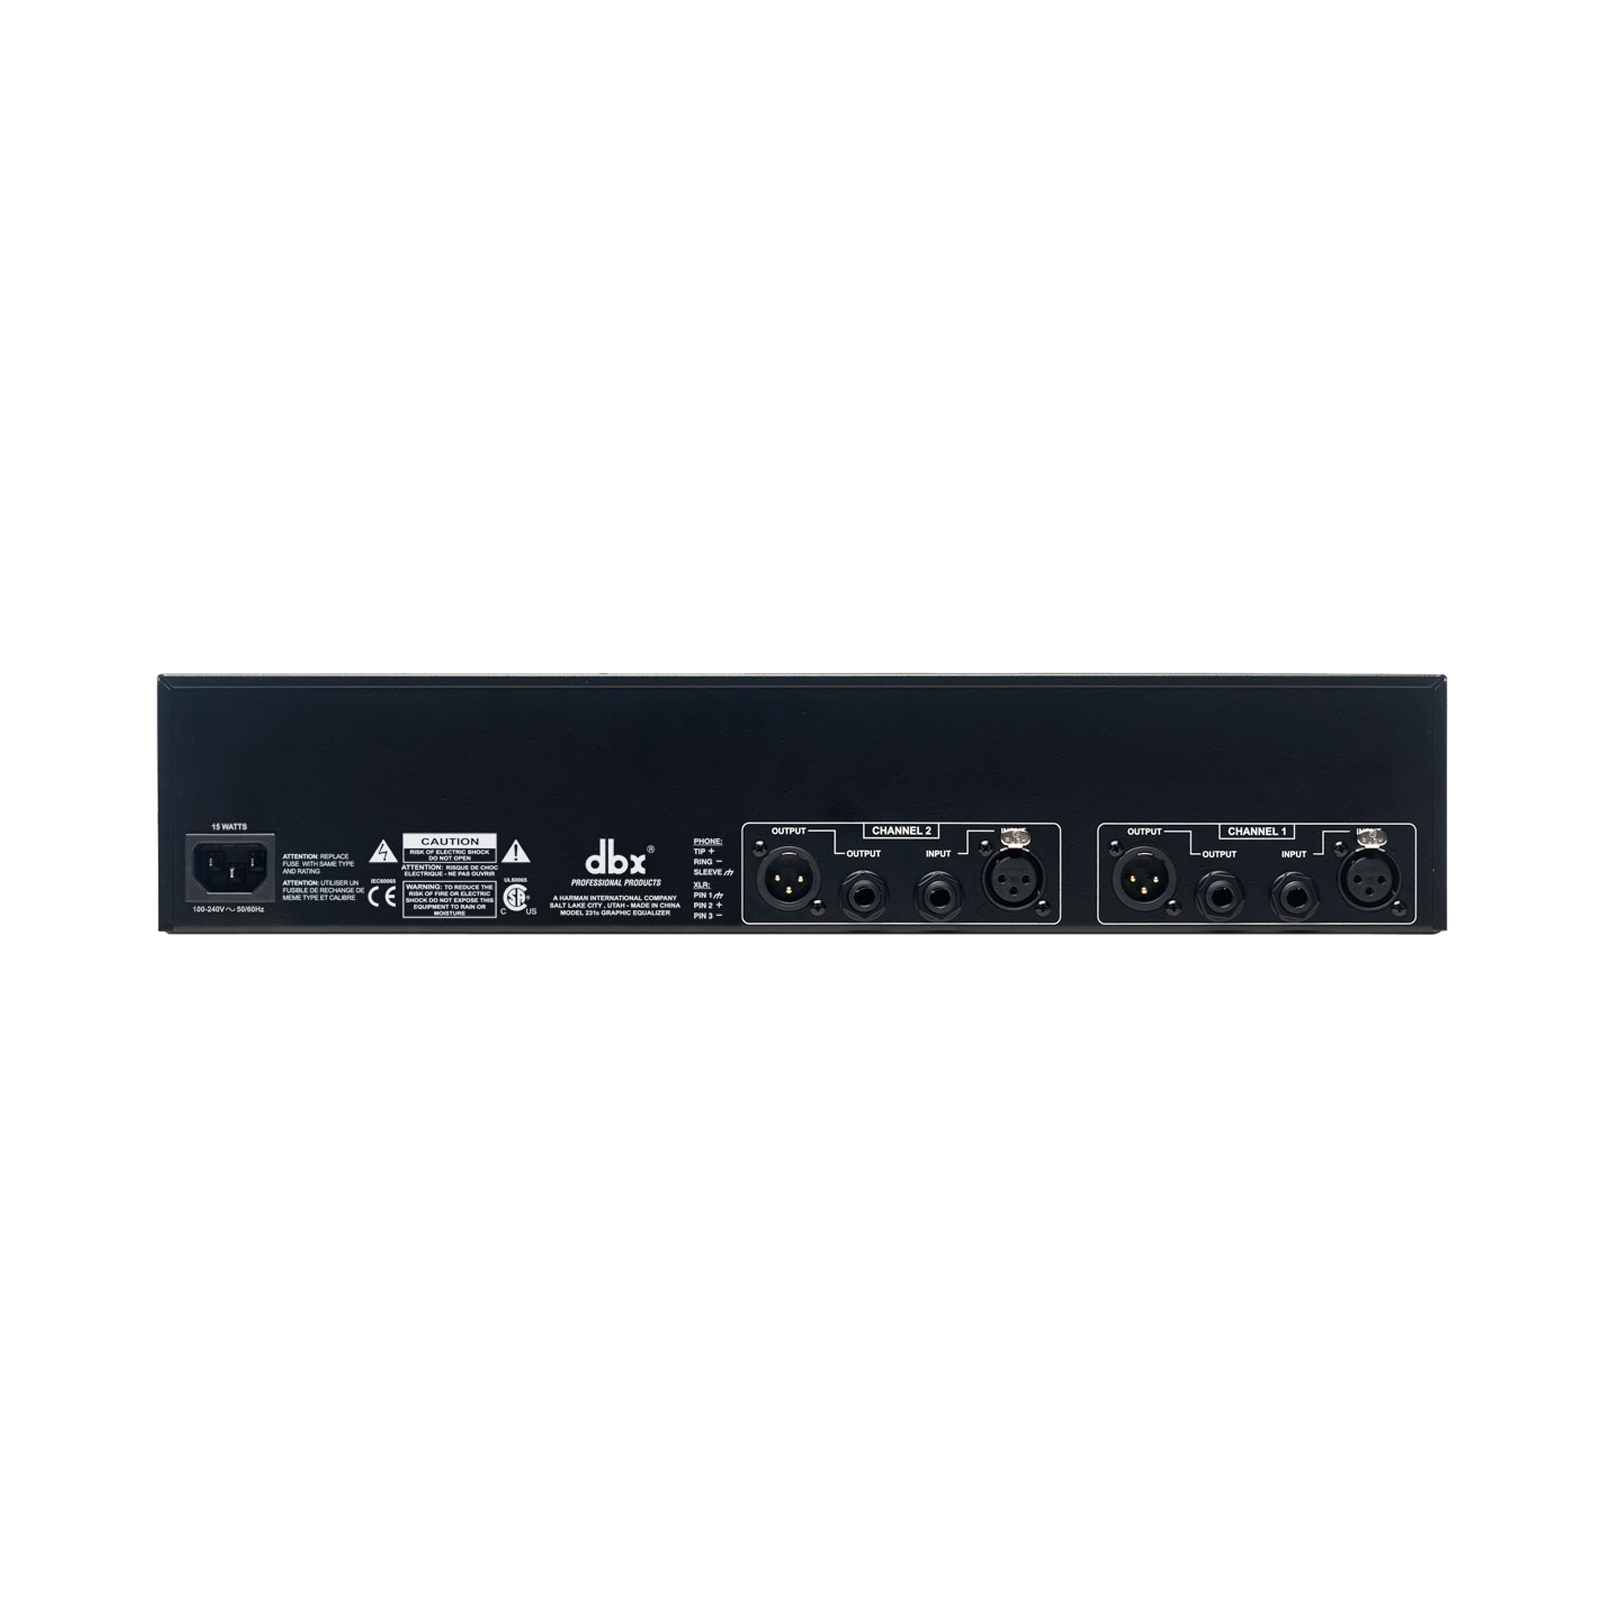 231s - White - Dual channel 31-band equalizer - Back